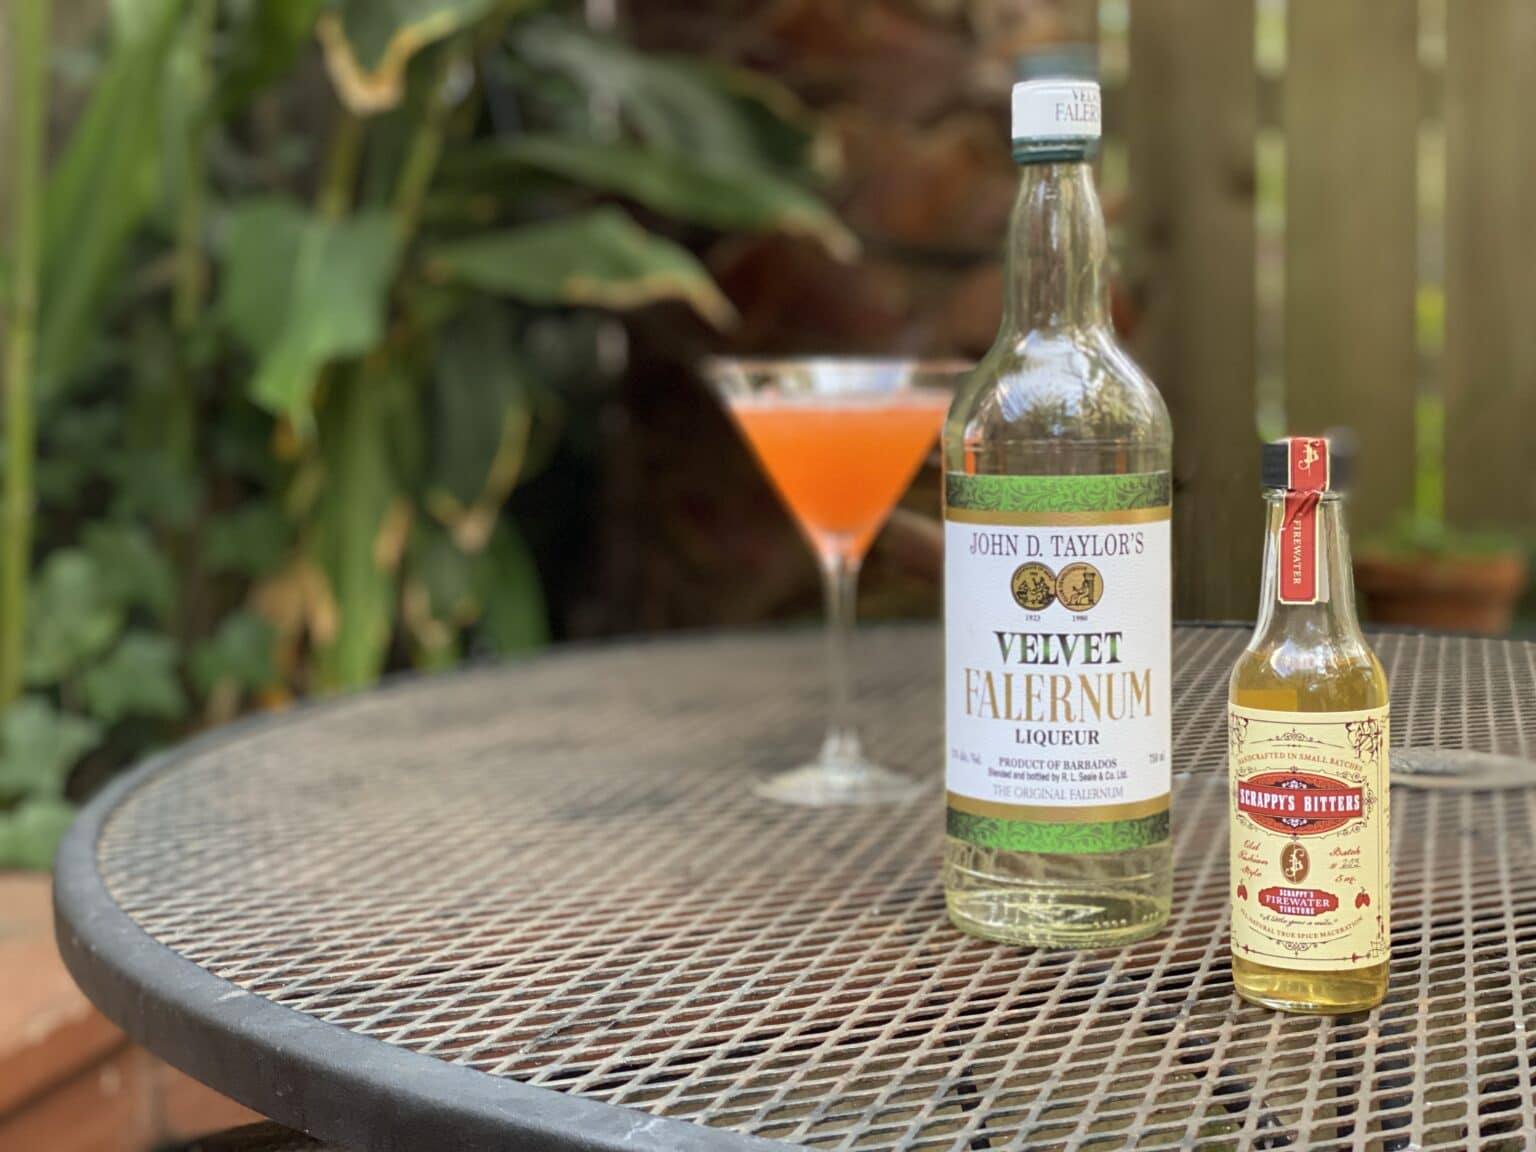 You need Velvet Falernum and Scrappy's Firewater Tincture to make a Spicy Dead Lady cocktail.